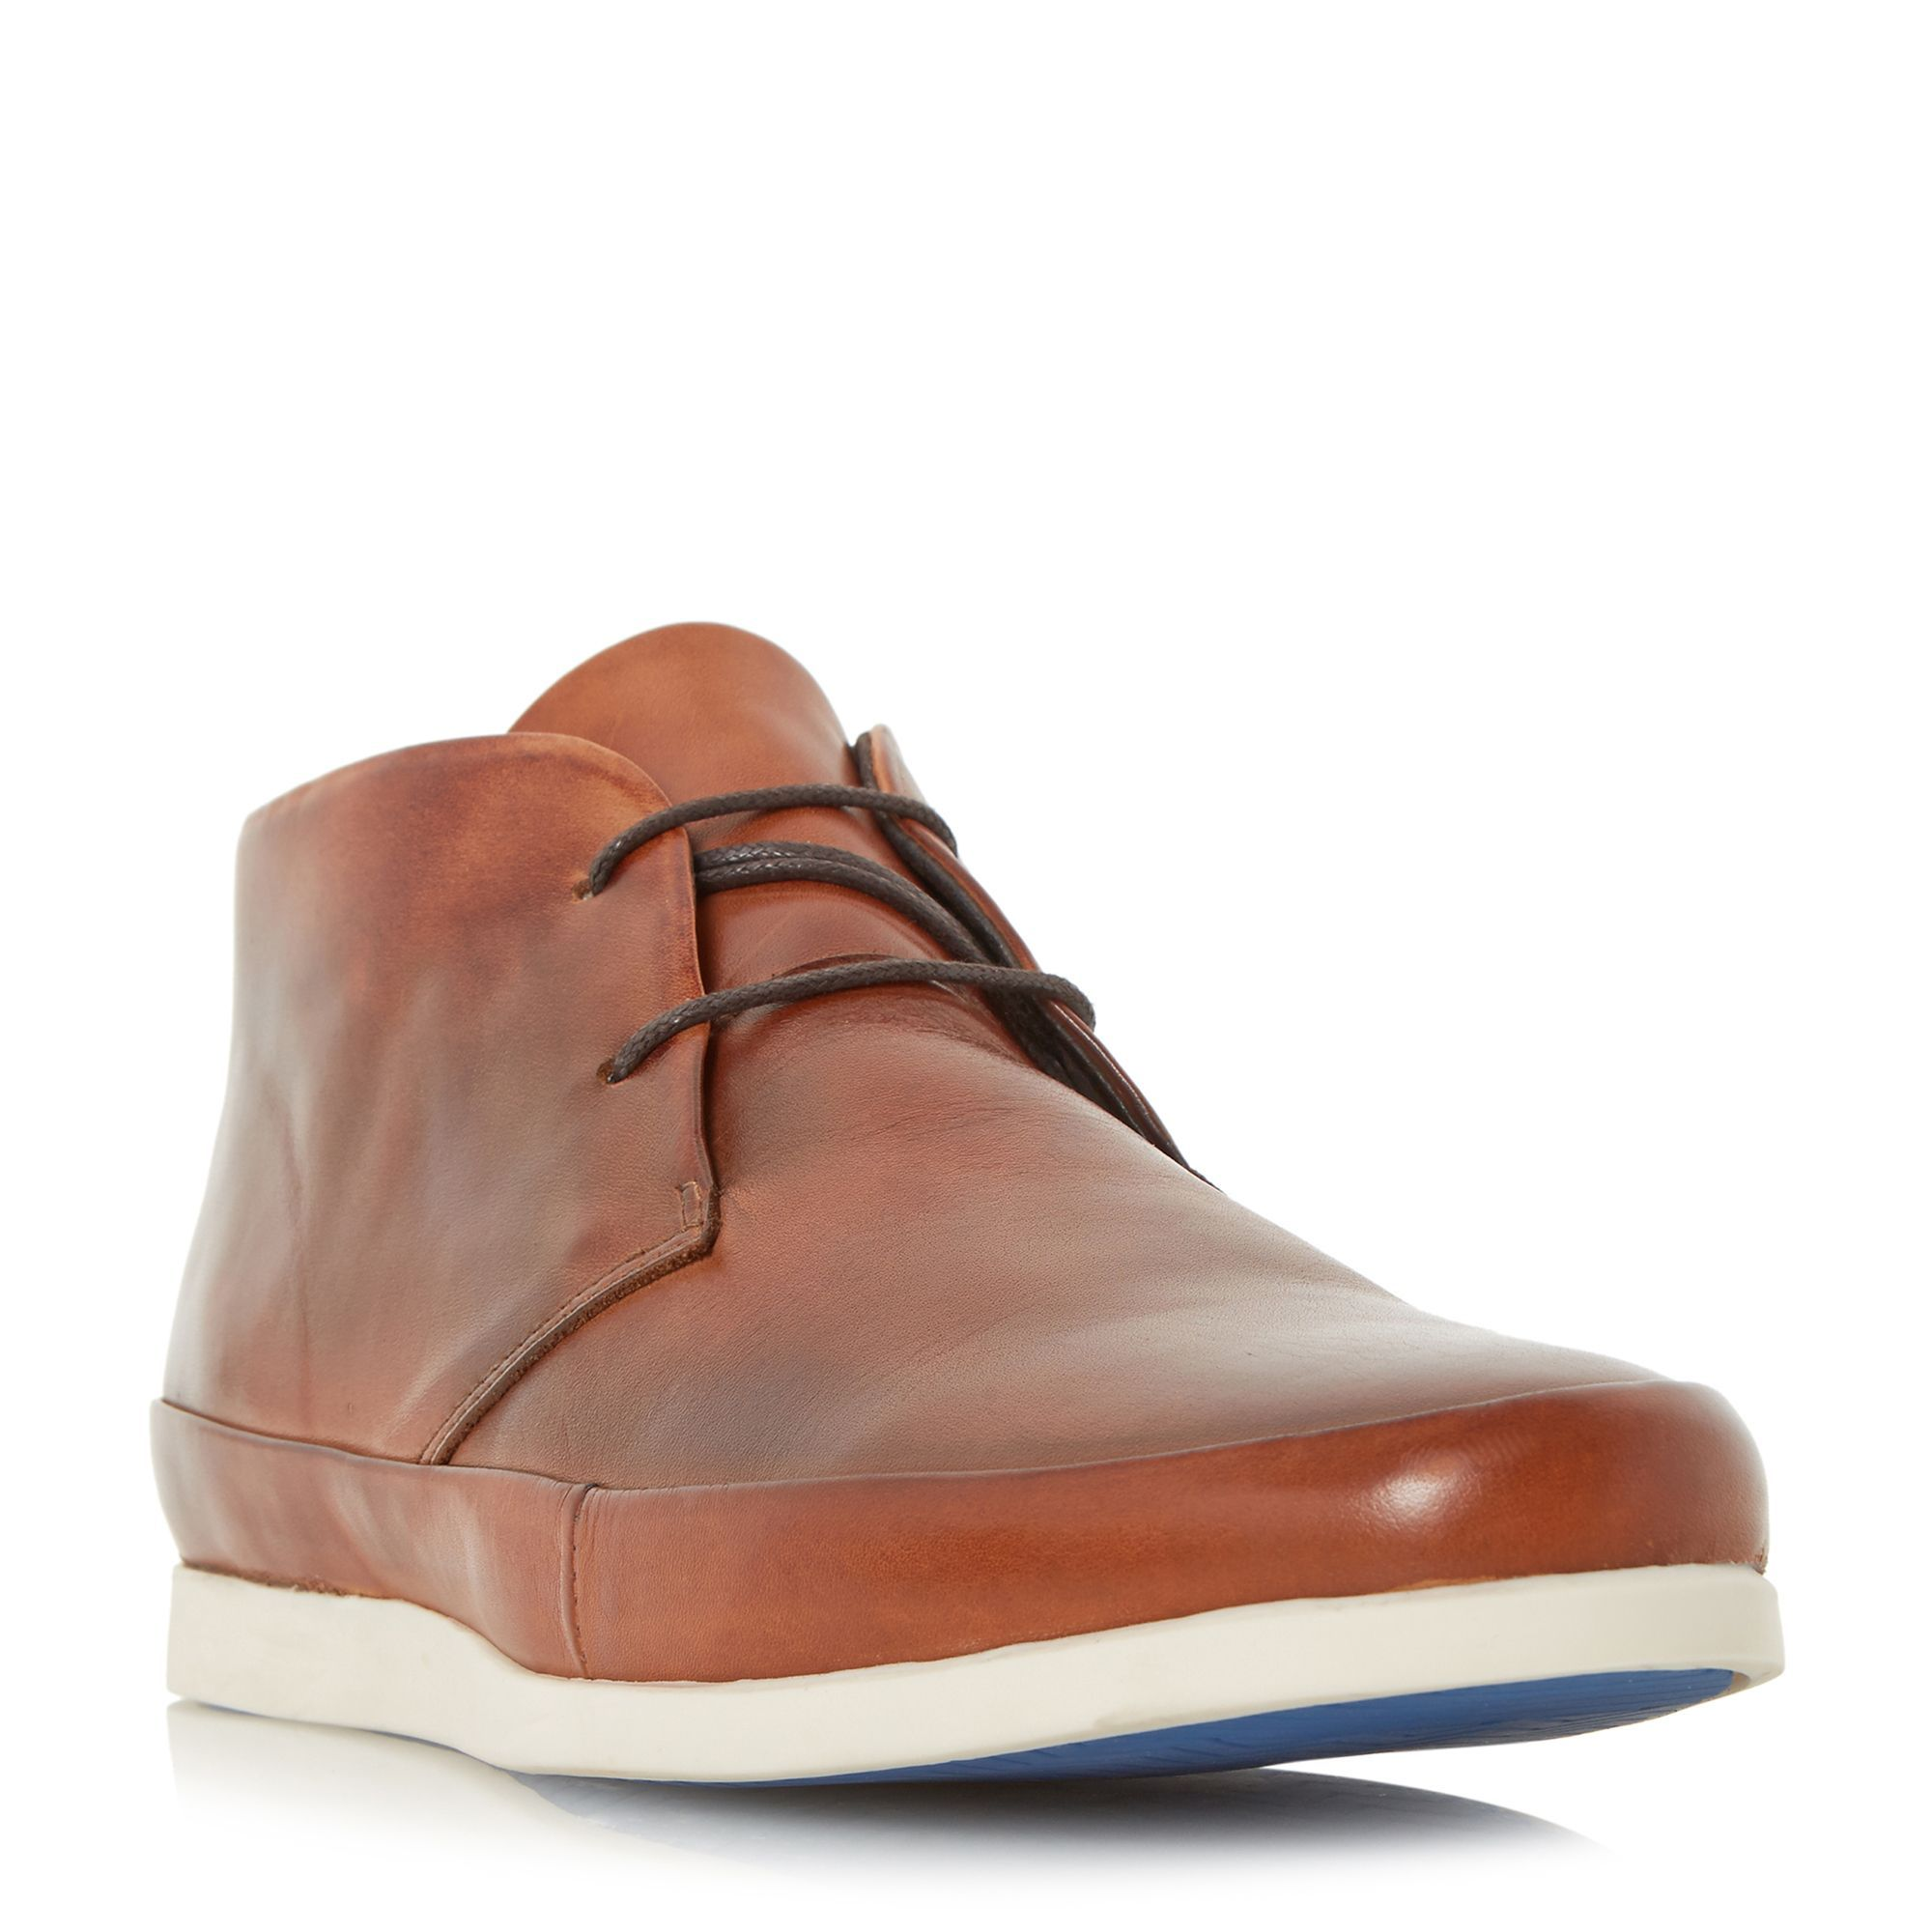 Bertie Clyde leather lace up boot, Tan · Leather Chukka BootsLeather ...